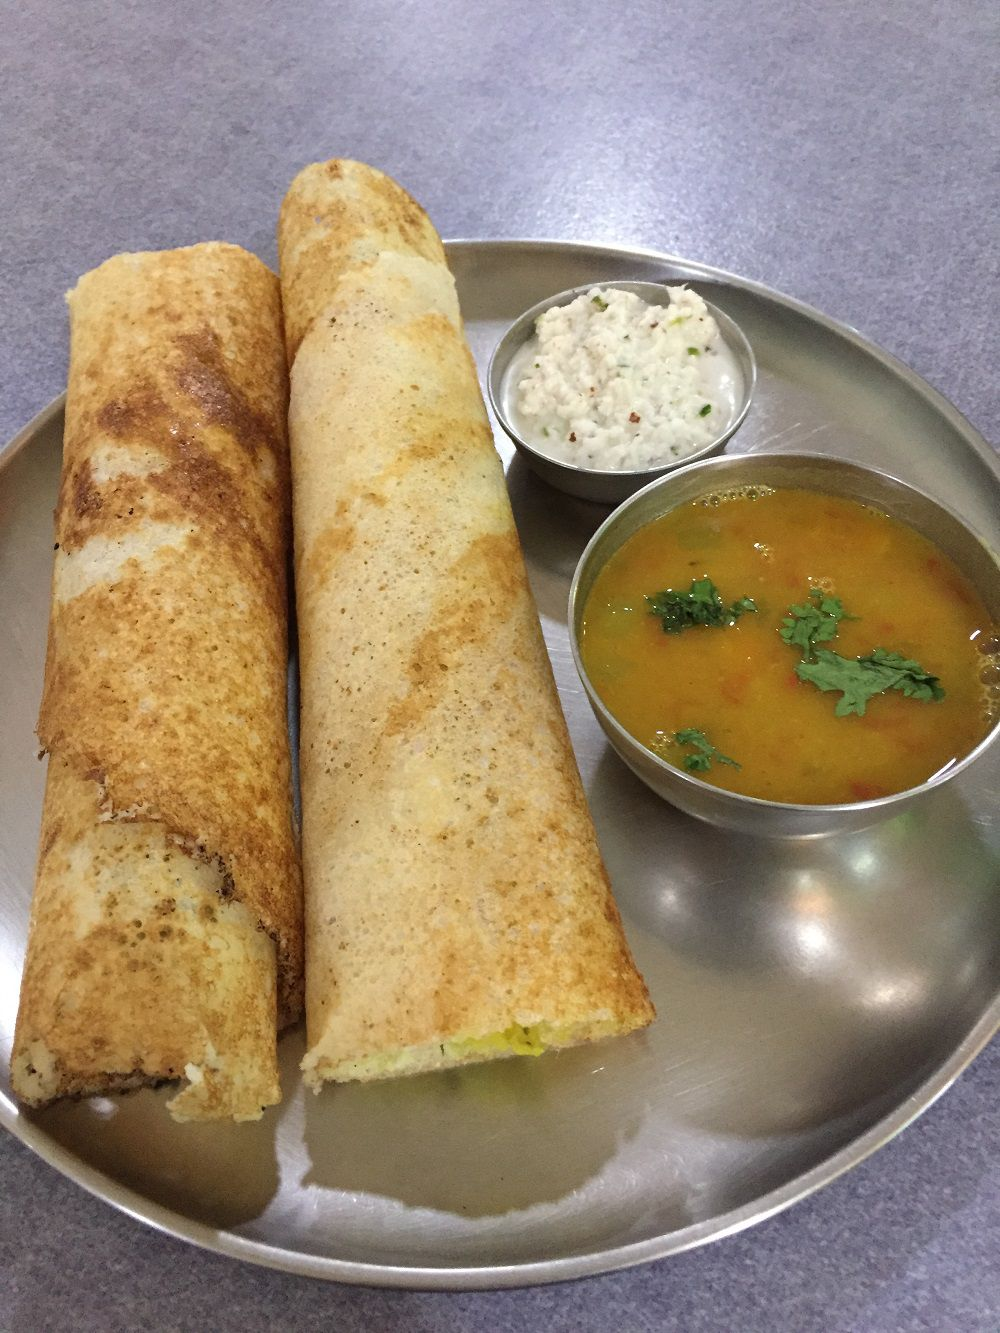 Masala dosa at Sarit Centre.